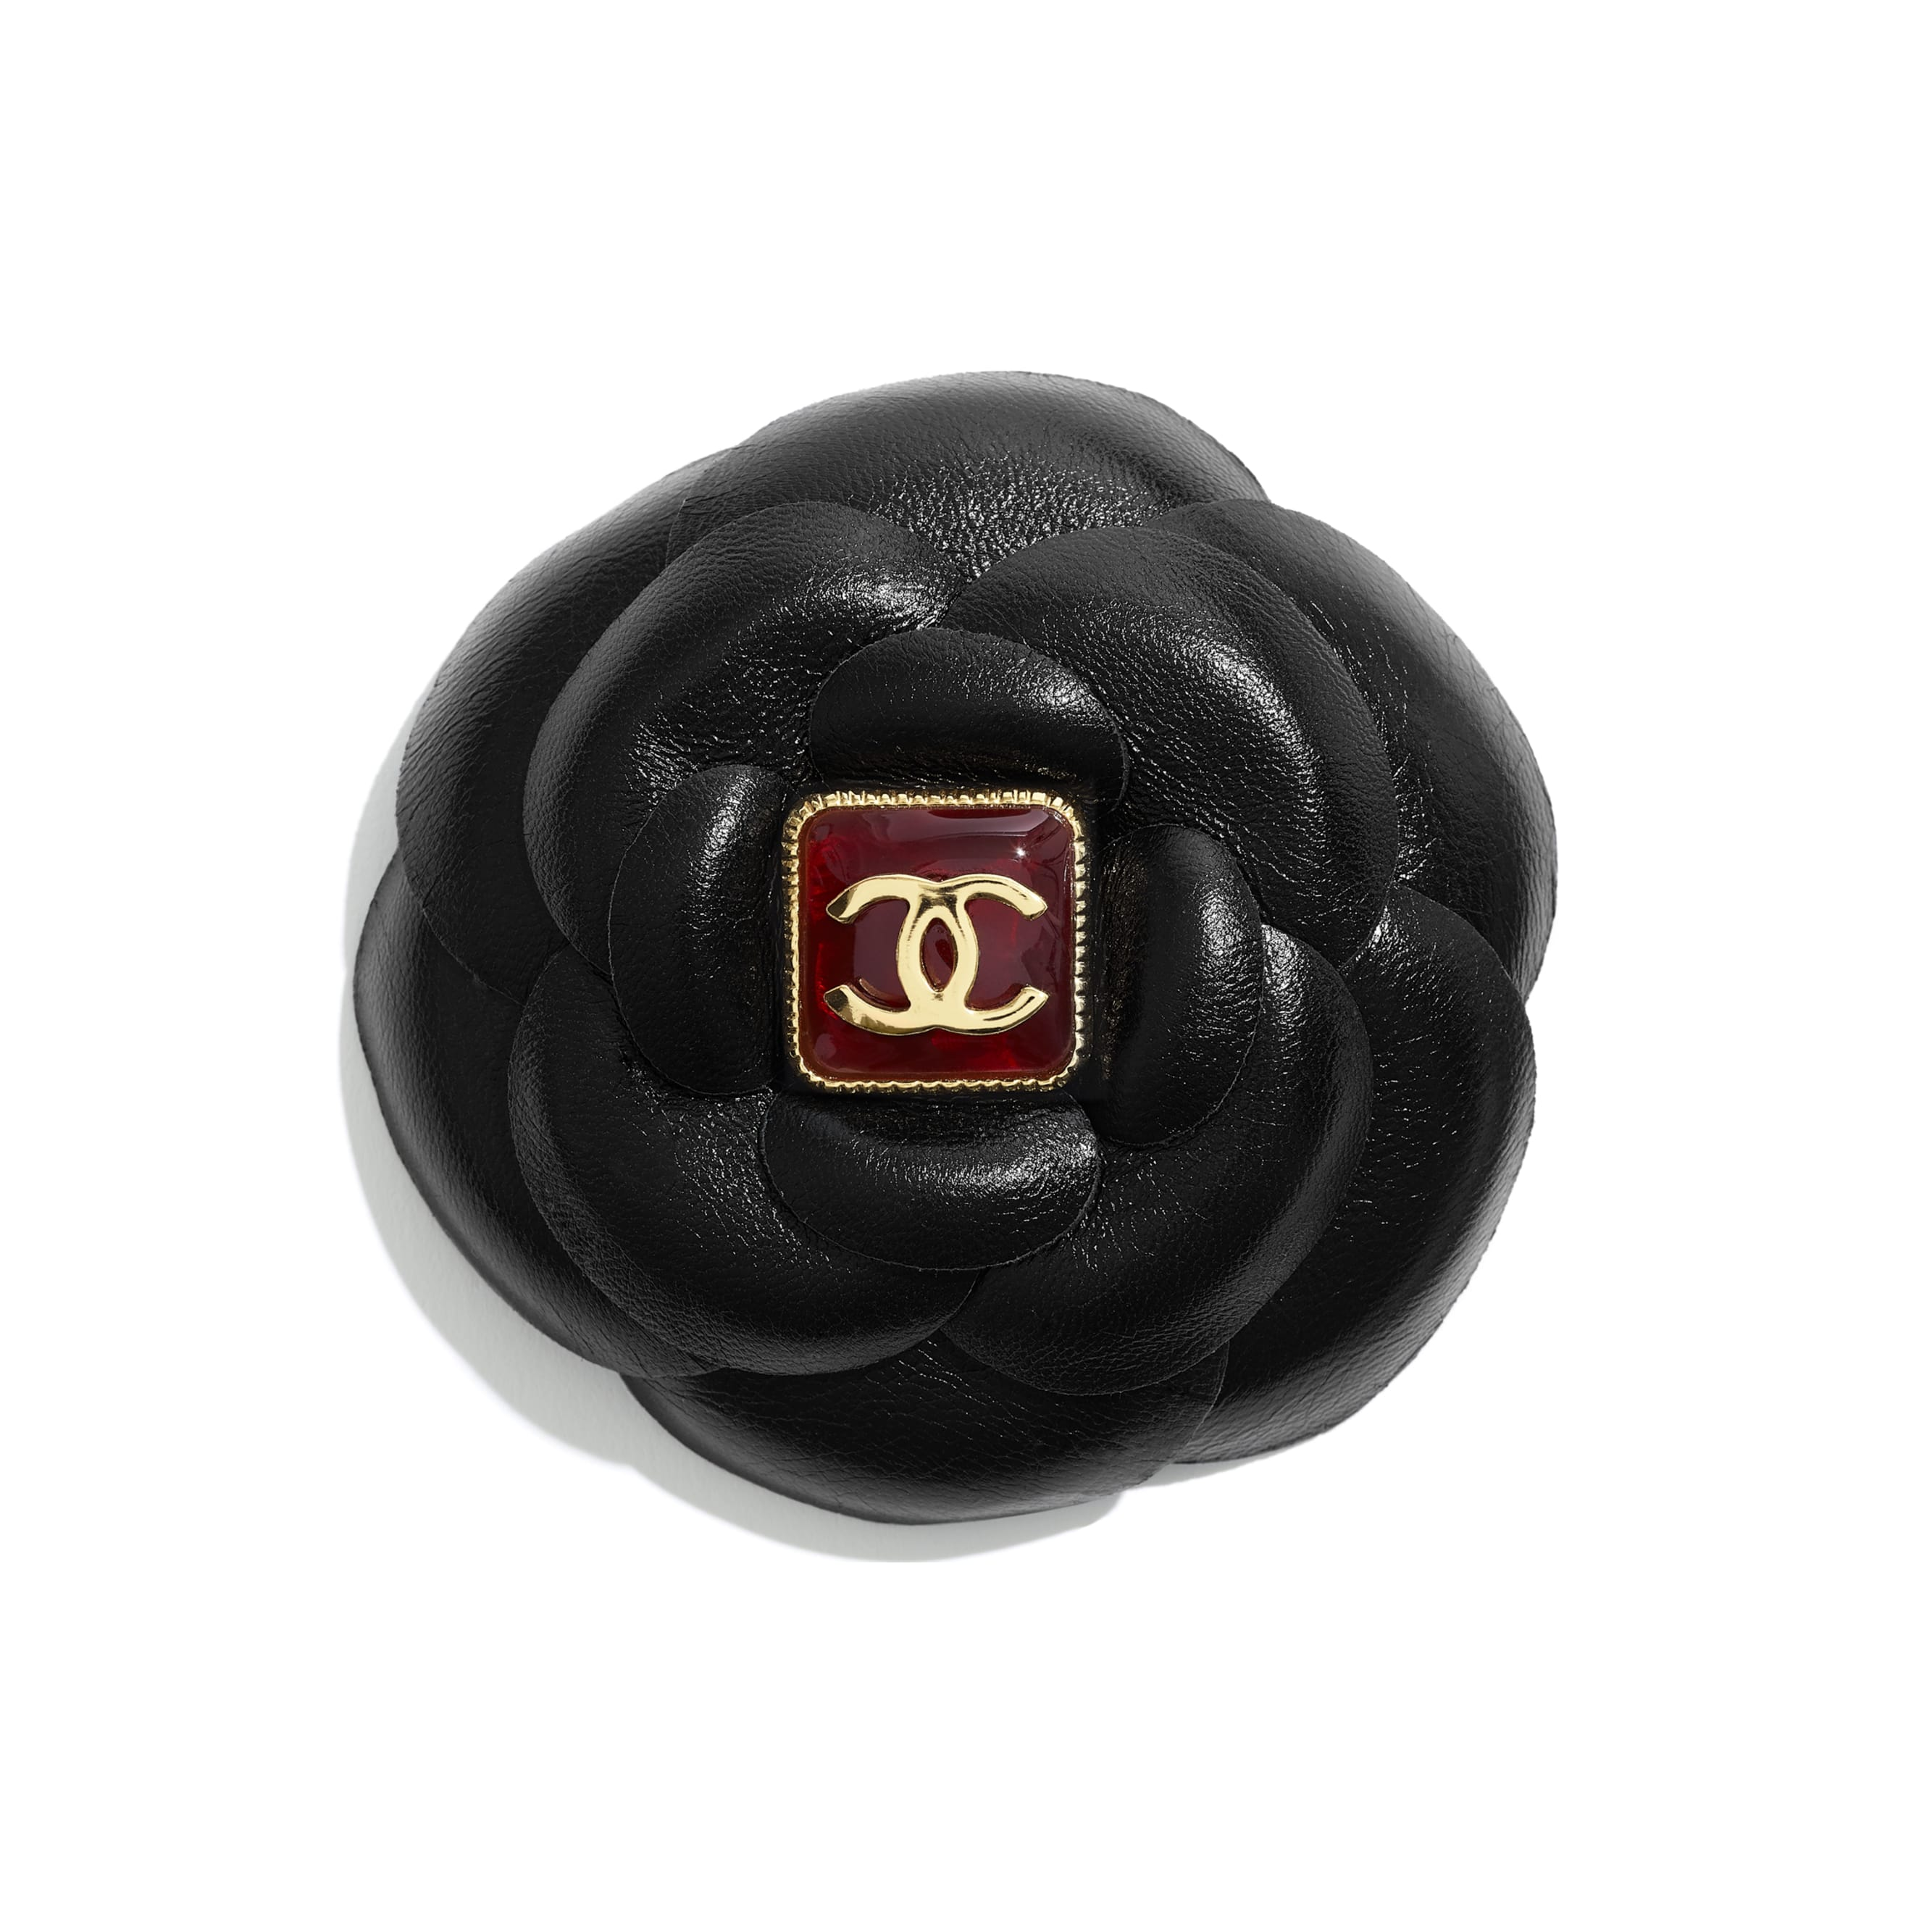 Hair Clip - Black & Burgundy - Lambskin, Resin & Gold-Tone Metal - CHANEL - Default view - see standard sized version